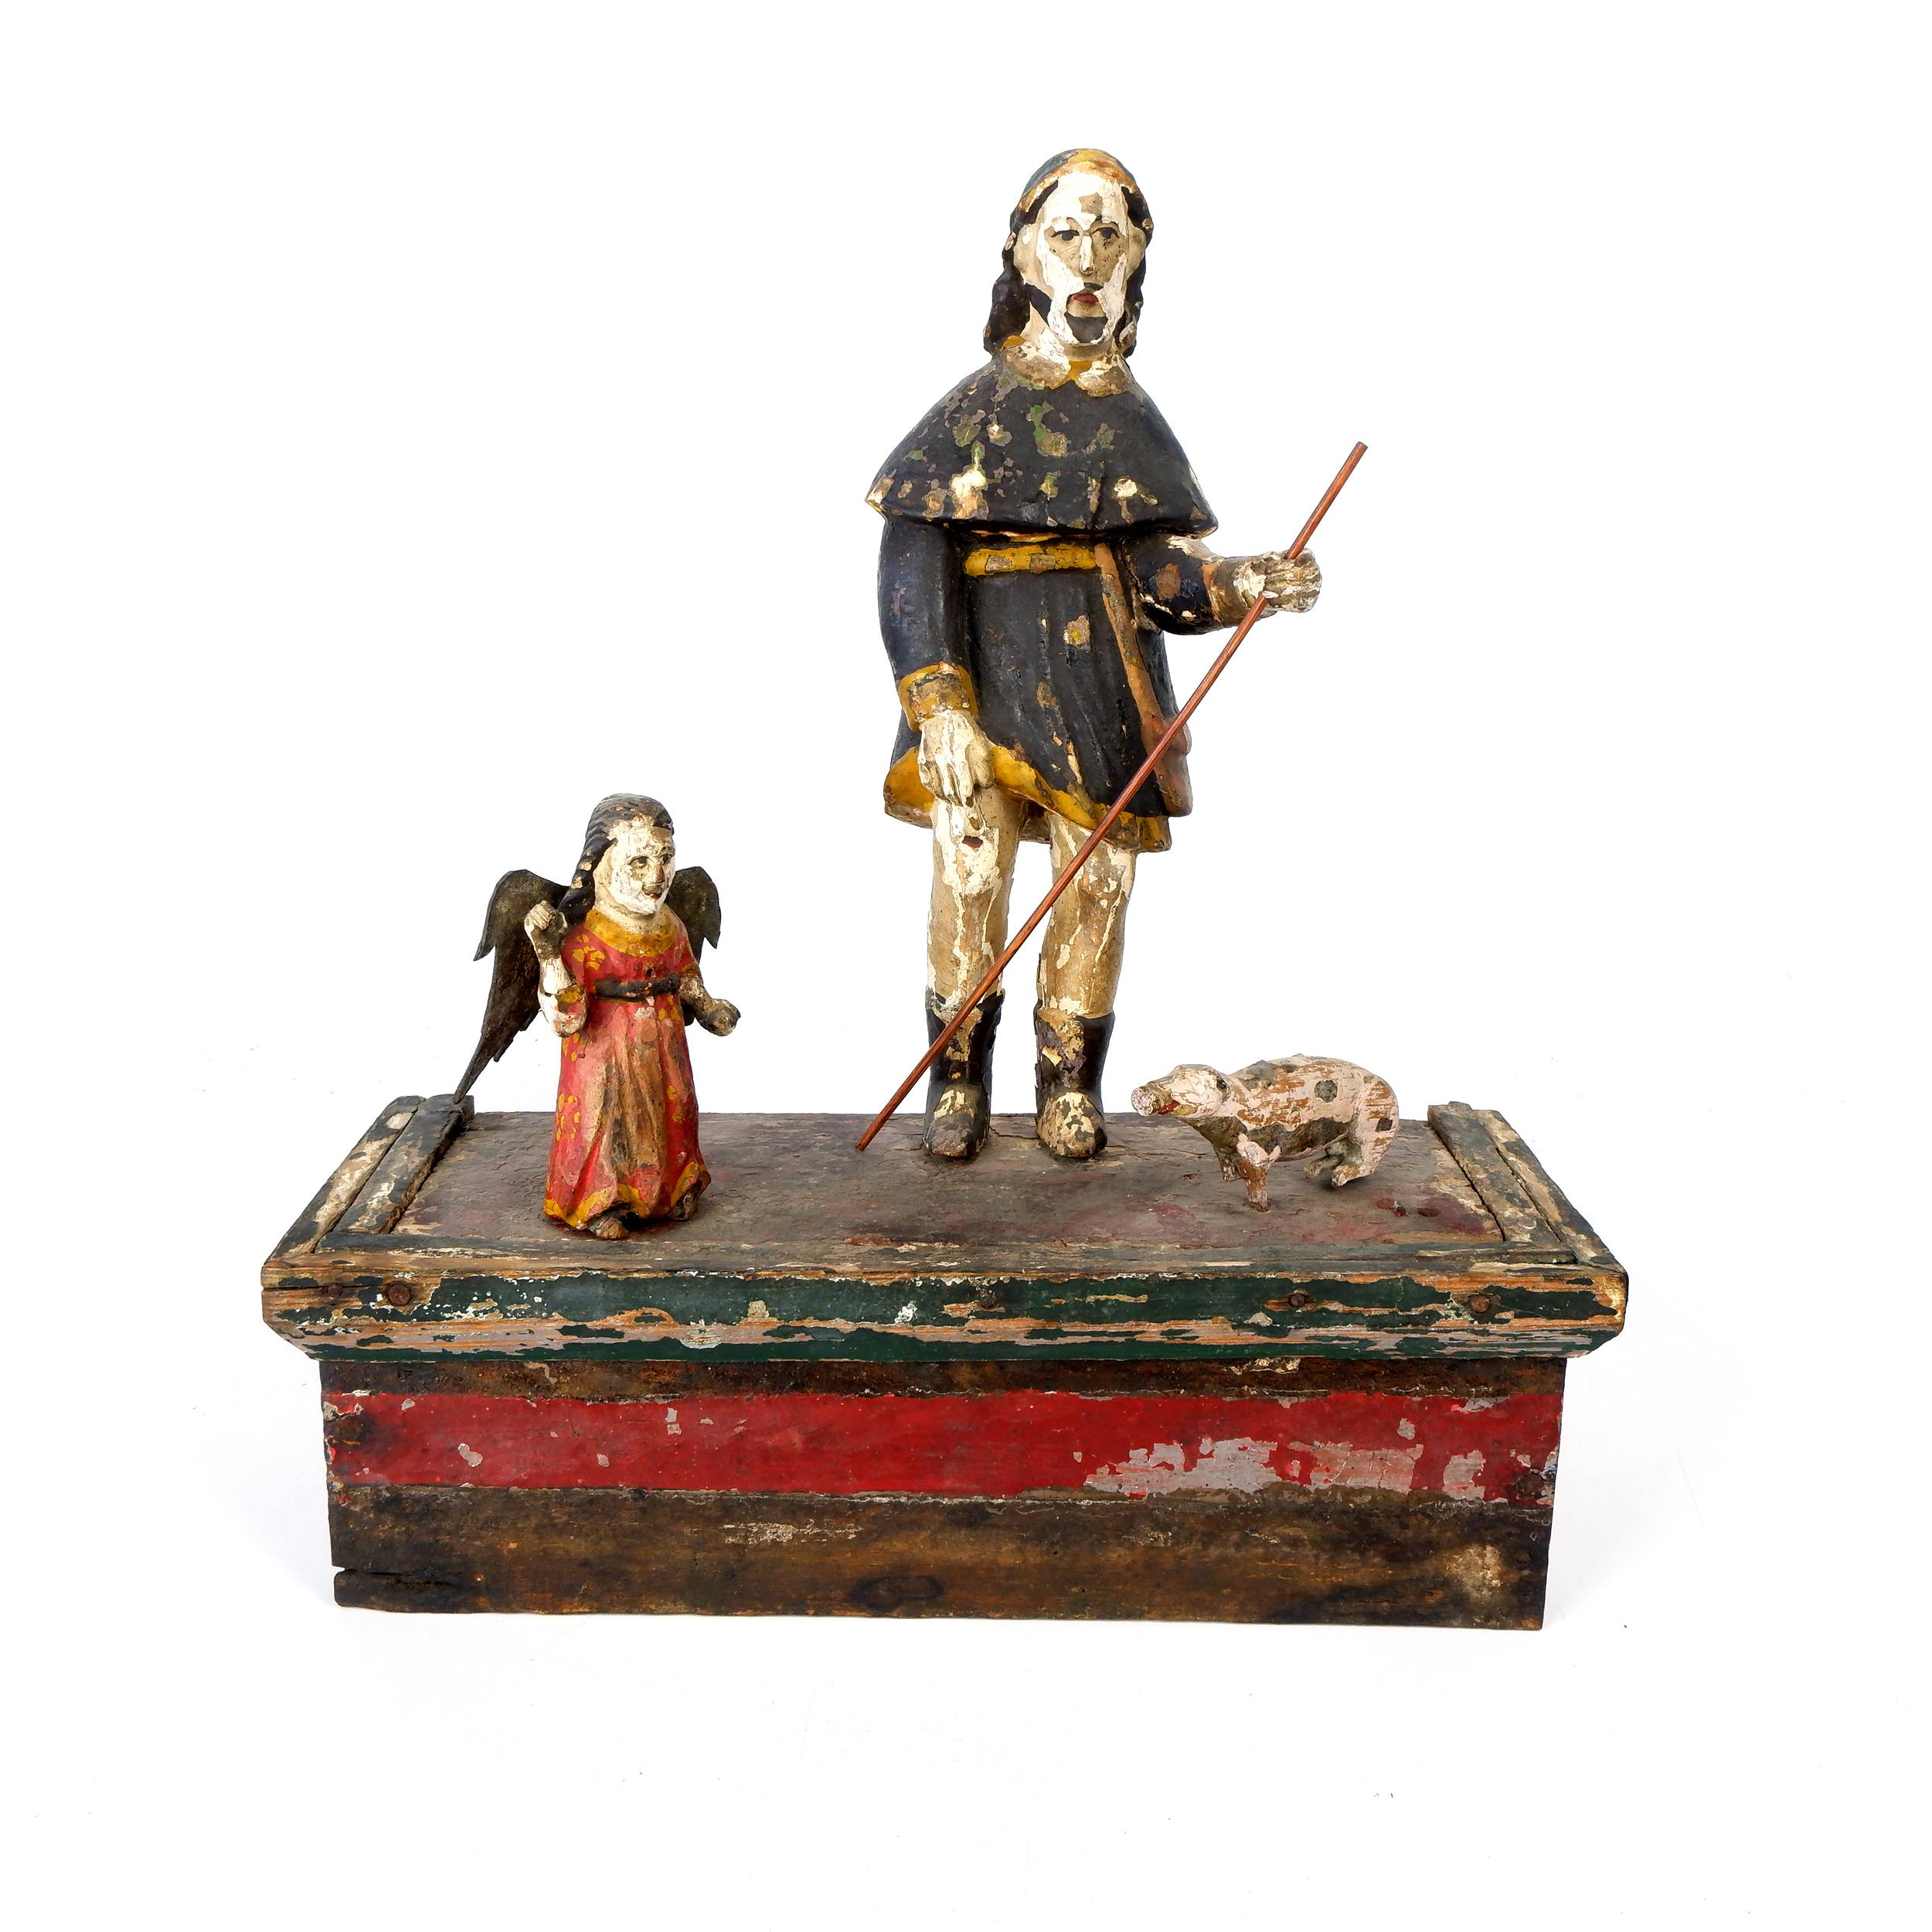 'Antique Philippino Hand Carved and Painted Santos Figure of Saint Roch on his Pilgrimage Accompanied by an Angel and a Dog, Late 19th to Early 20th Century'